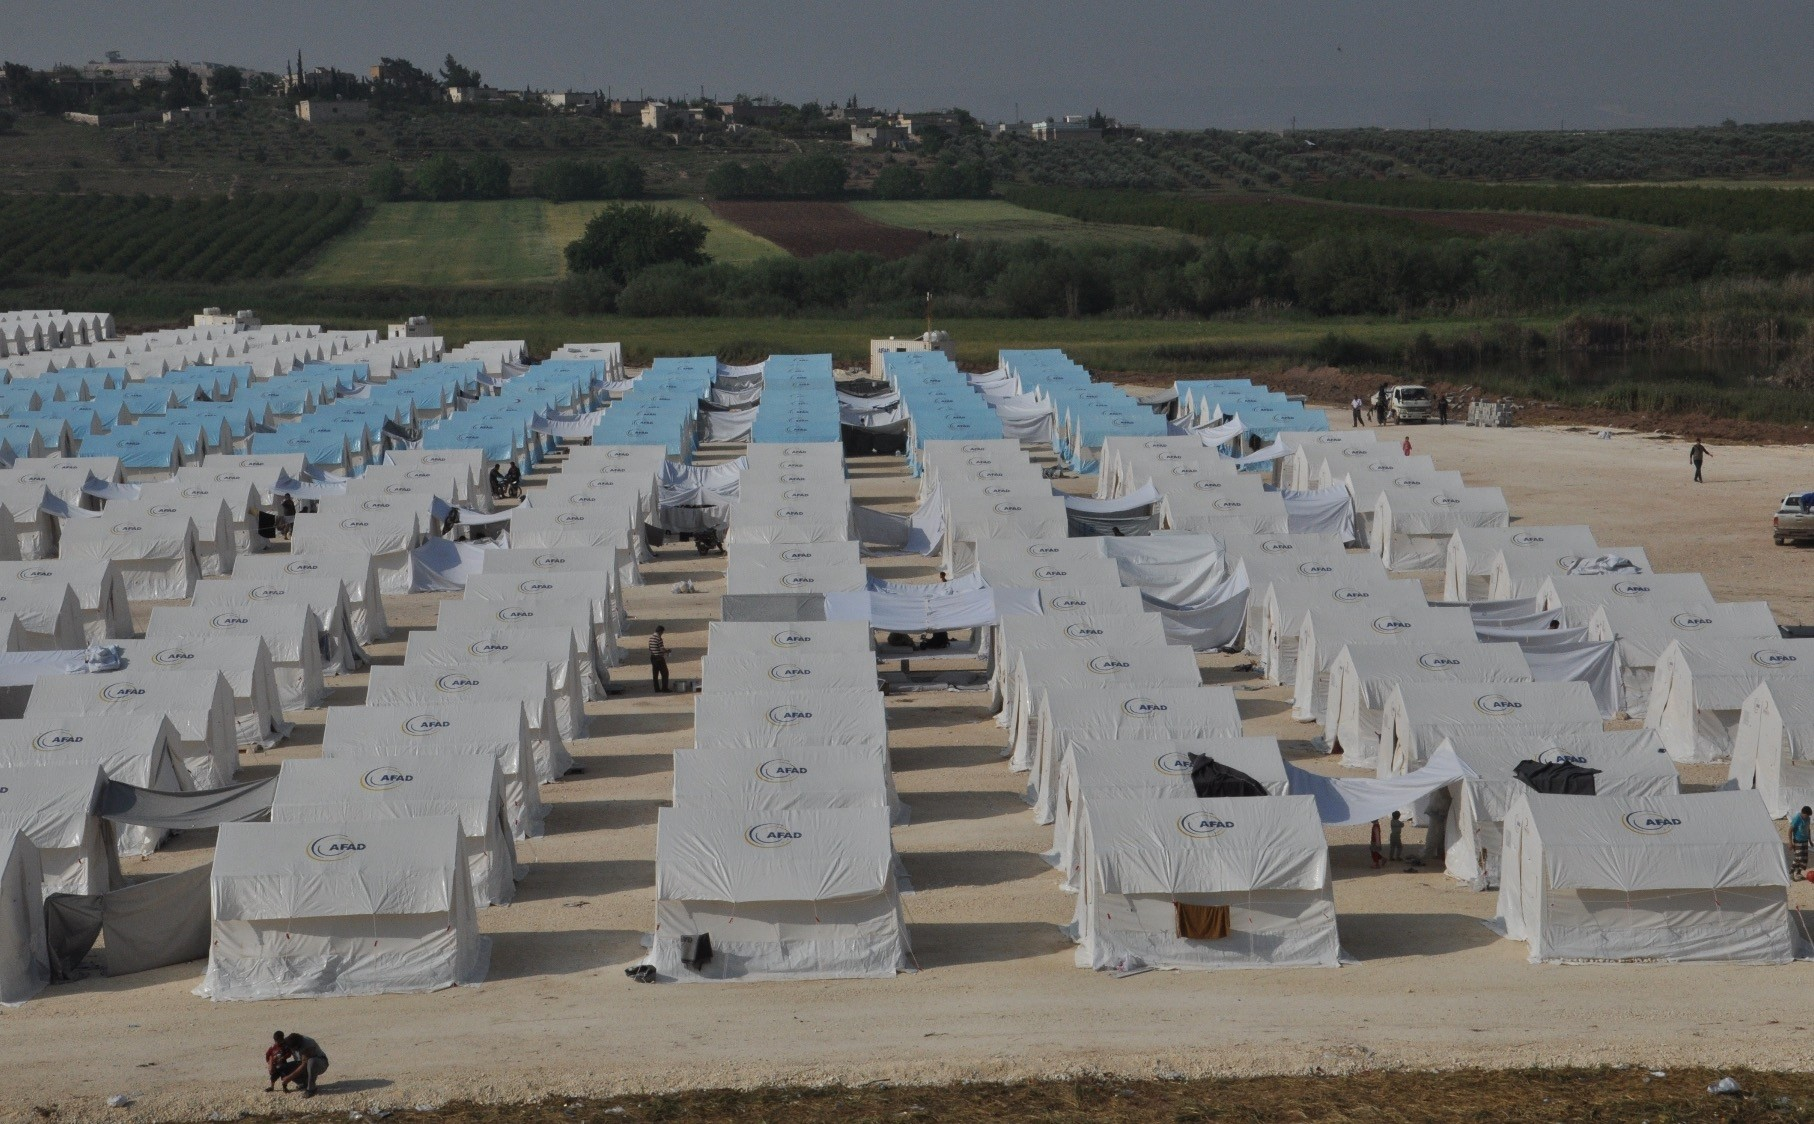 A refugee camp built by Turkeyu2019s Disaster and Emergency Management Authority (AFAD) in Afrinu2019s Muhammadiyah village.